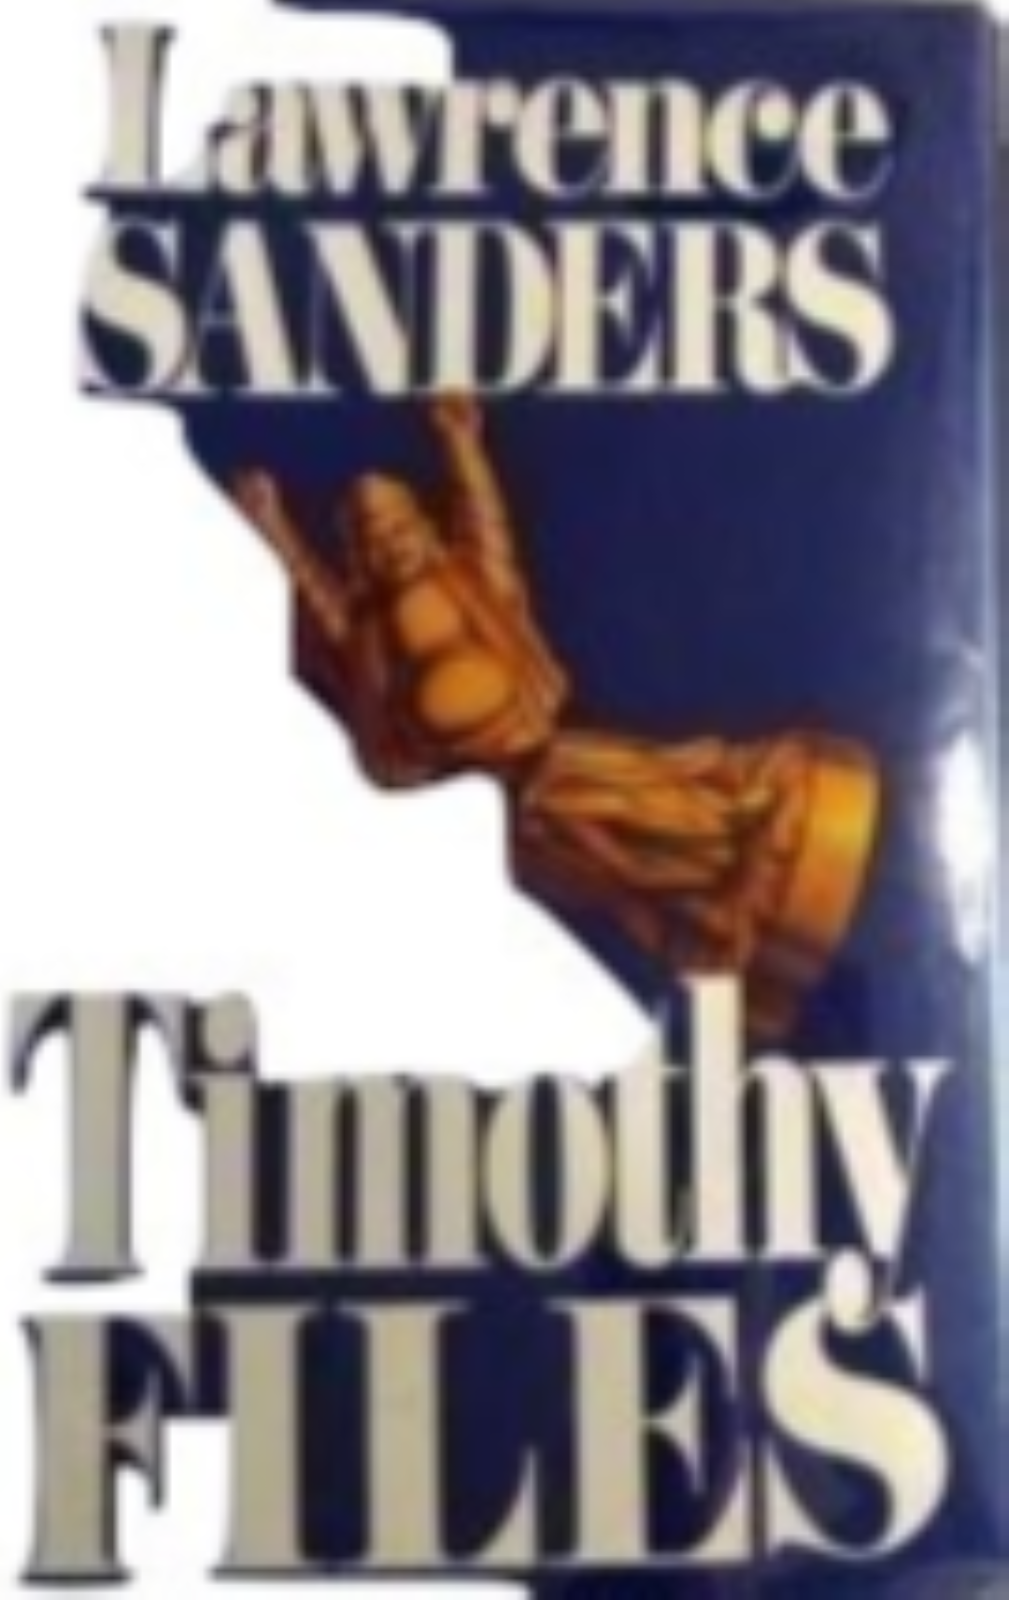 The Timothy Files by Sanders, Lawrence